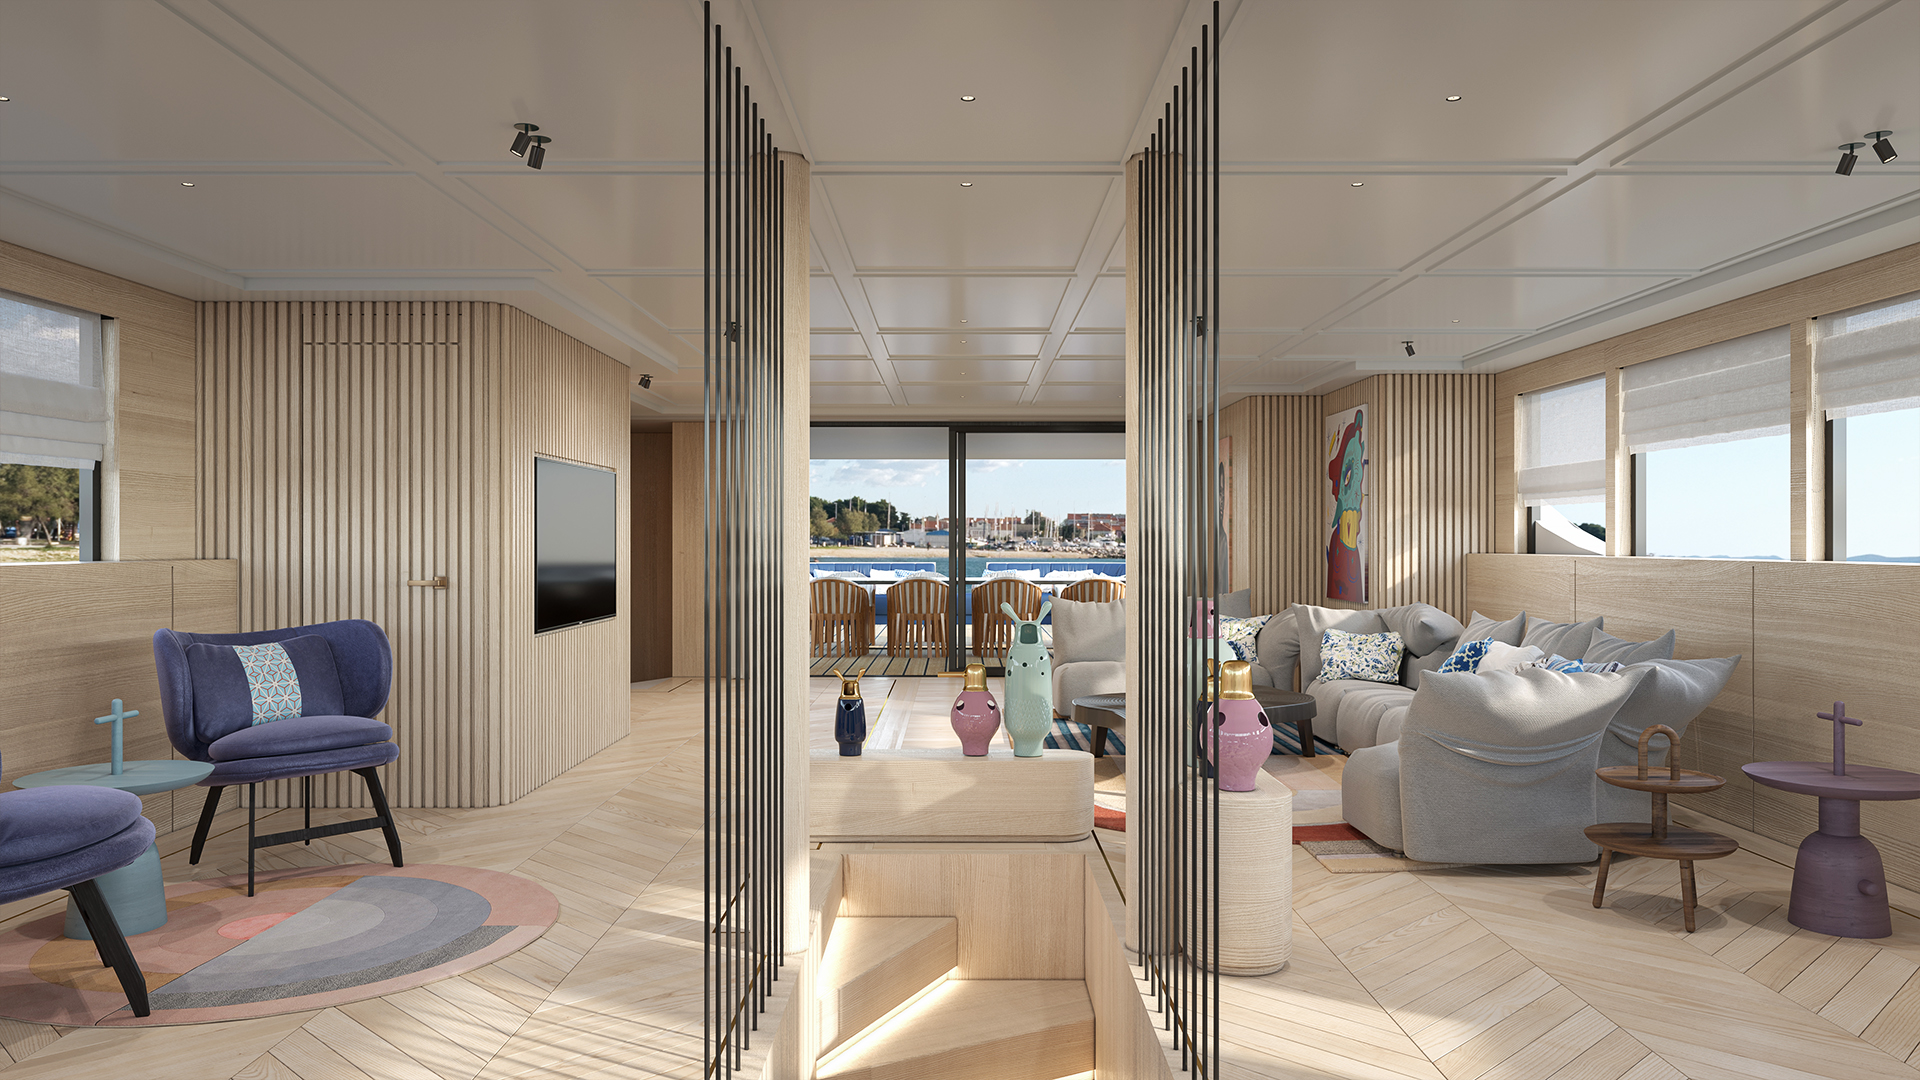 Maayan-Golan_Architectural-Visualization_interior-visualization_yacht-design_living-room_design-by-rust_07